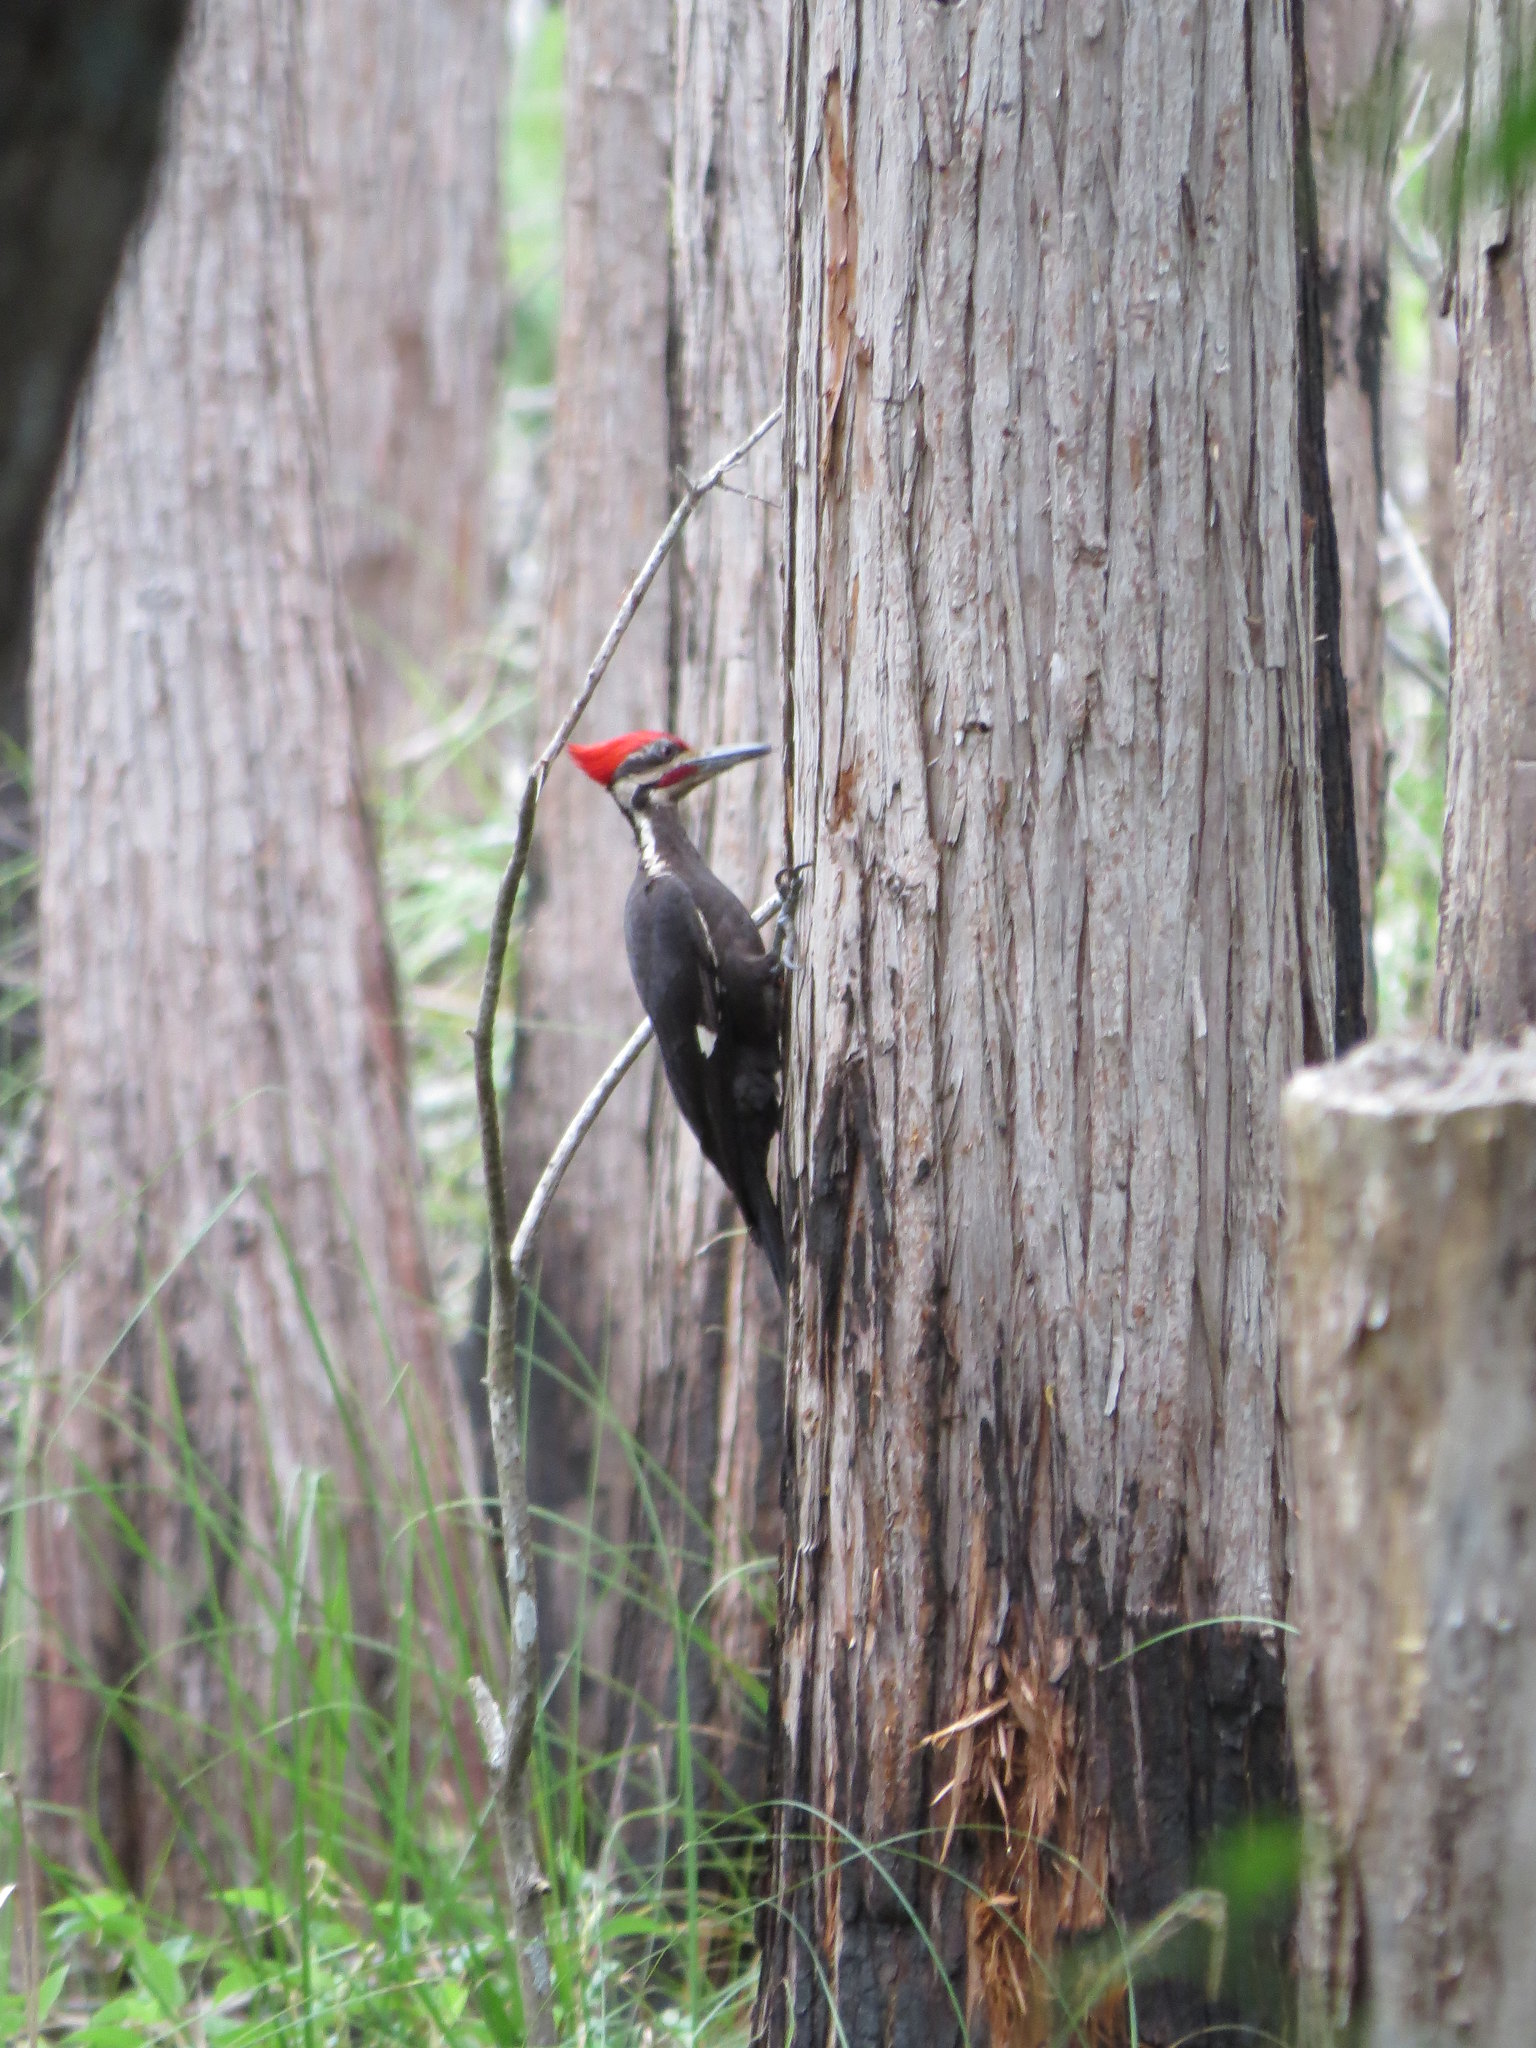 A pileated woodpecker in Okefenokee NWR